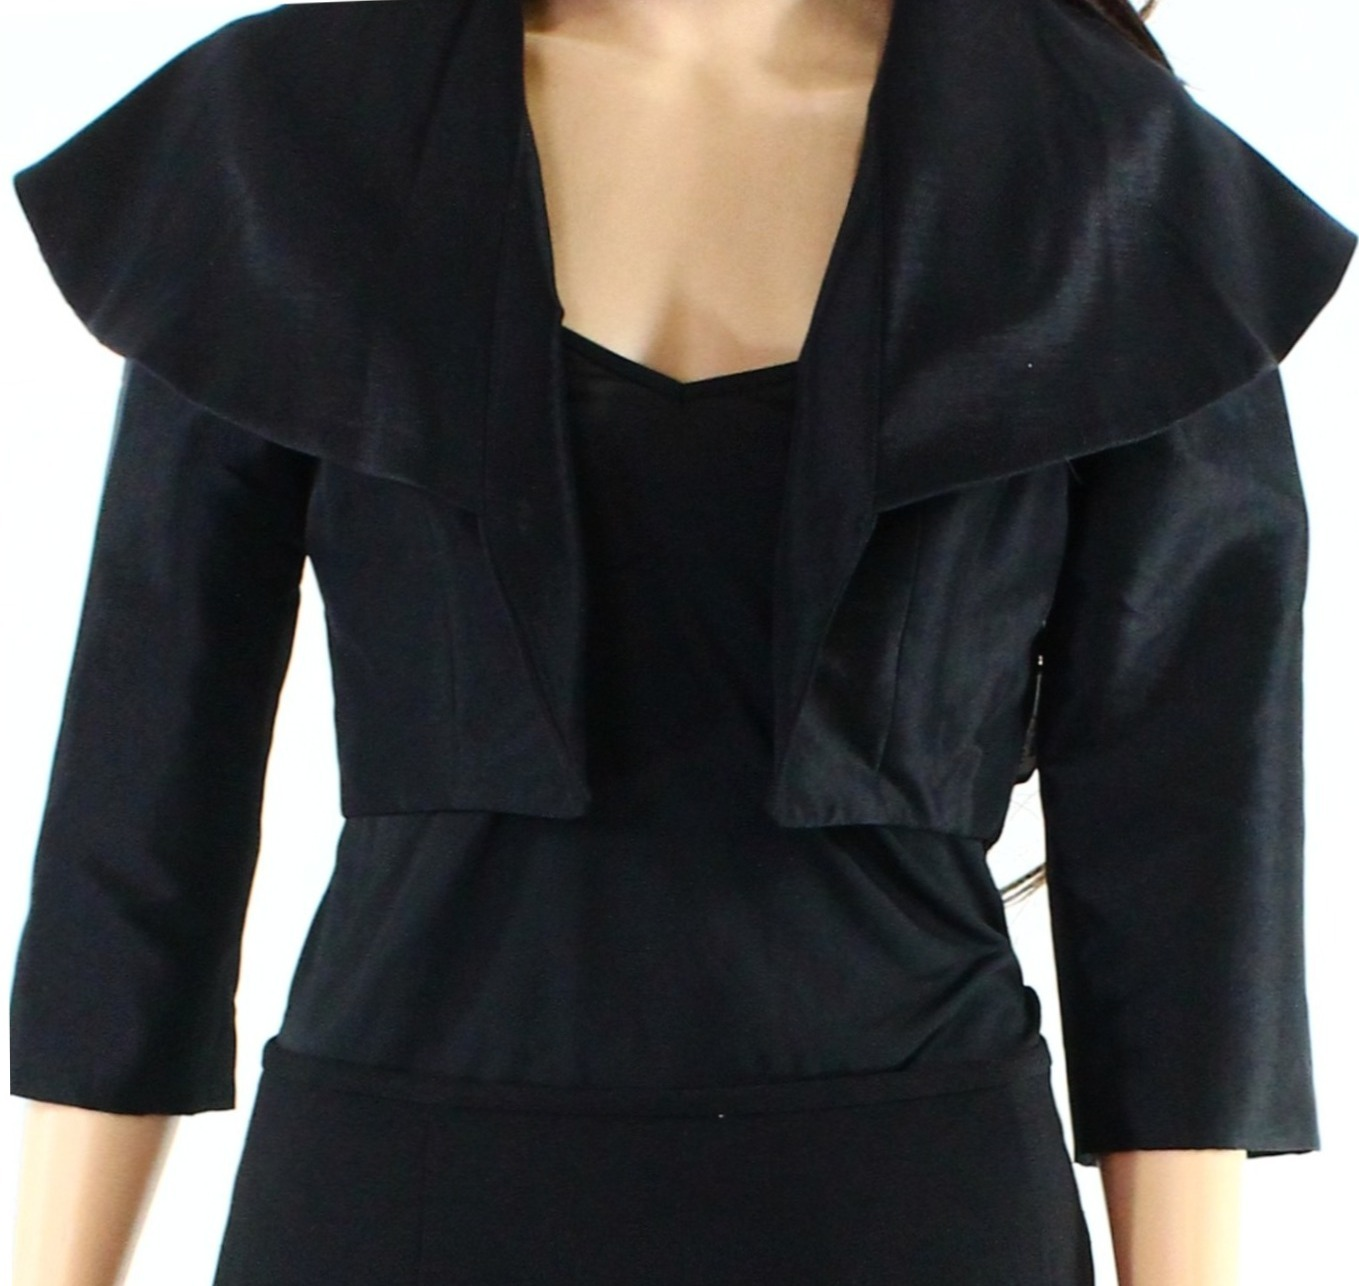 B Michael America NEW Black Womens 10 Cropped 3/4 Sleeve Bolero Jacket